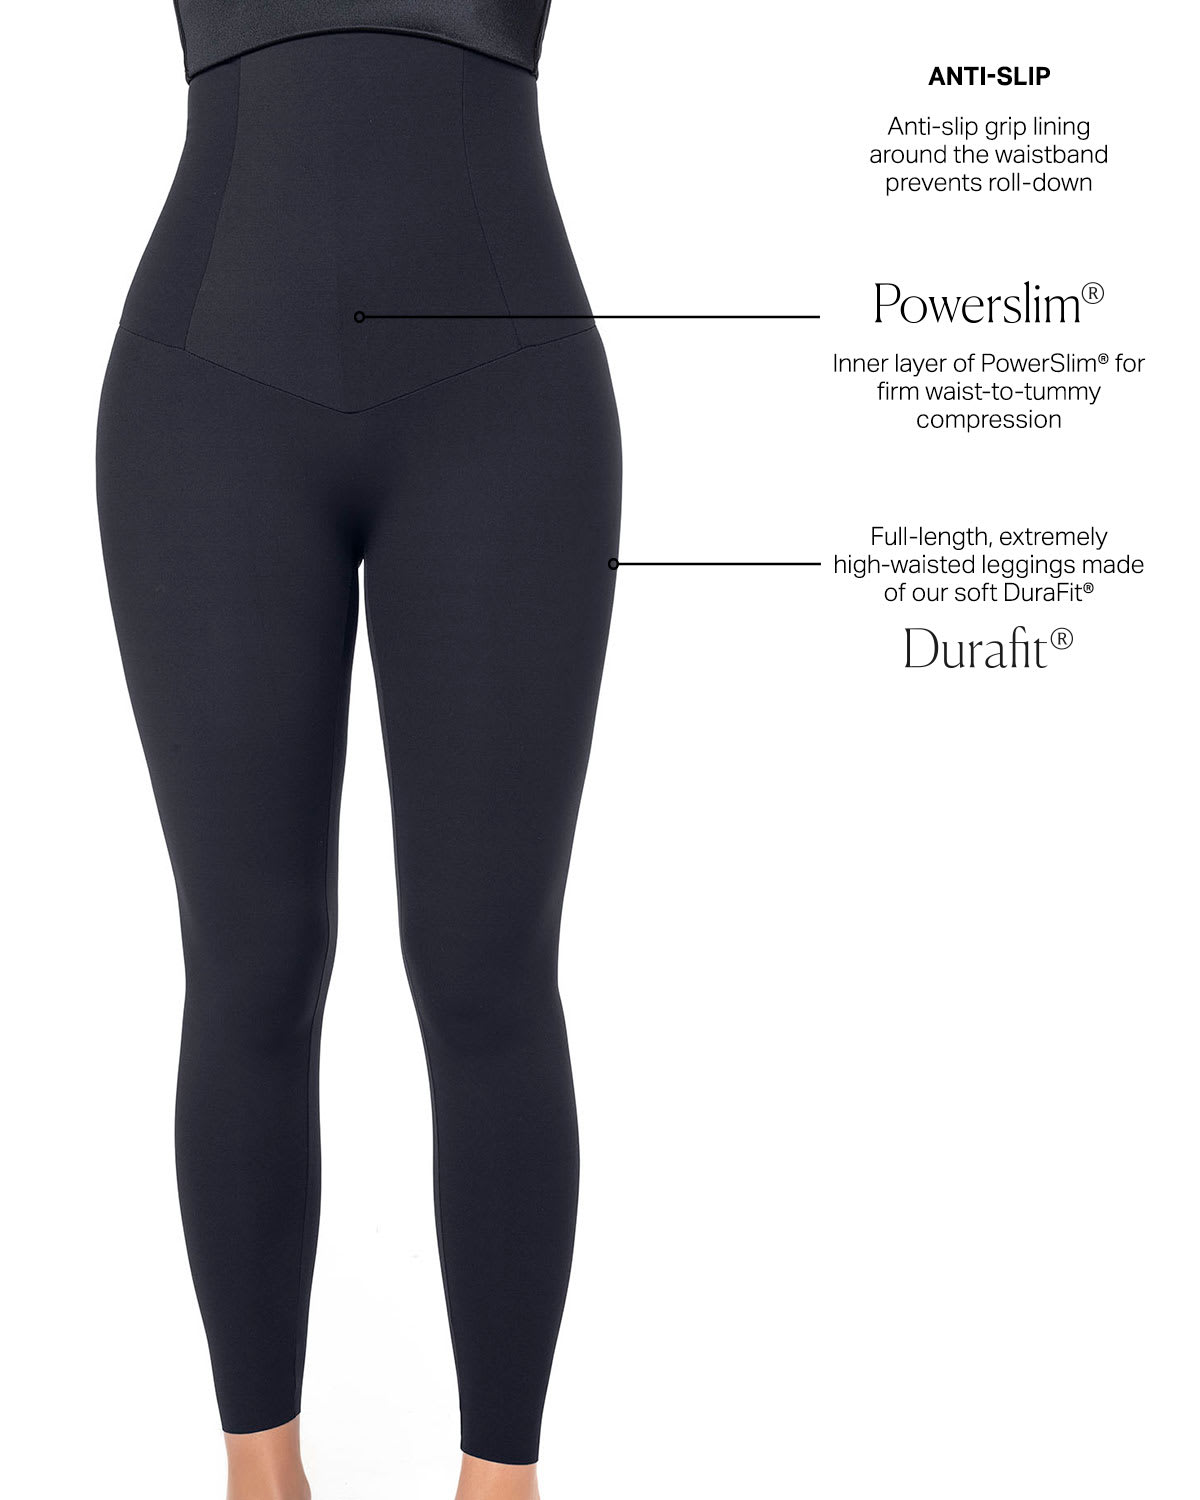 76d09a2e20 Extra High-Waisted Firm Compression Legging - ActiveLife | Leonisa